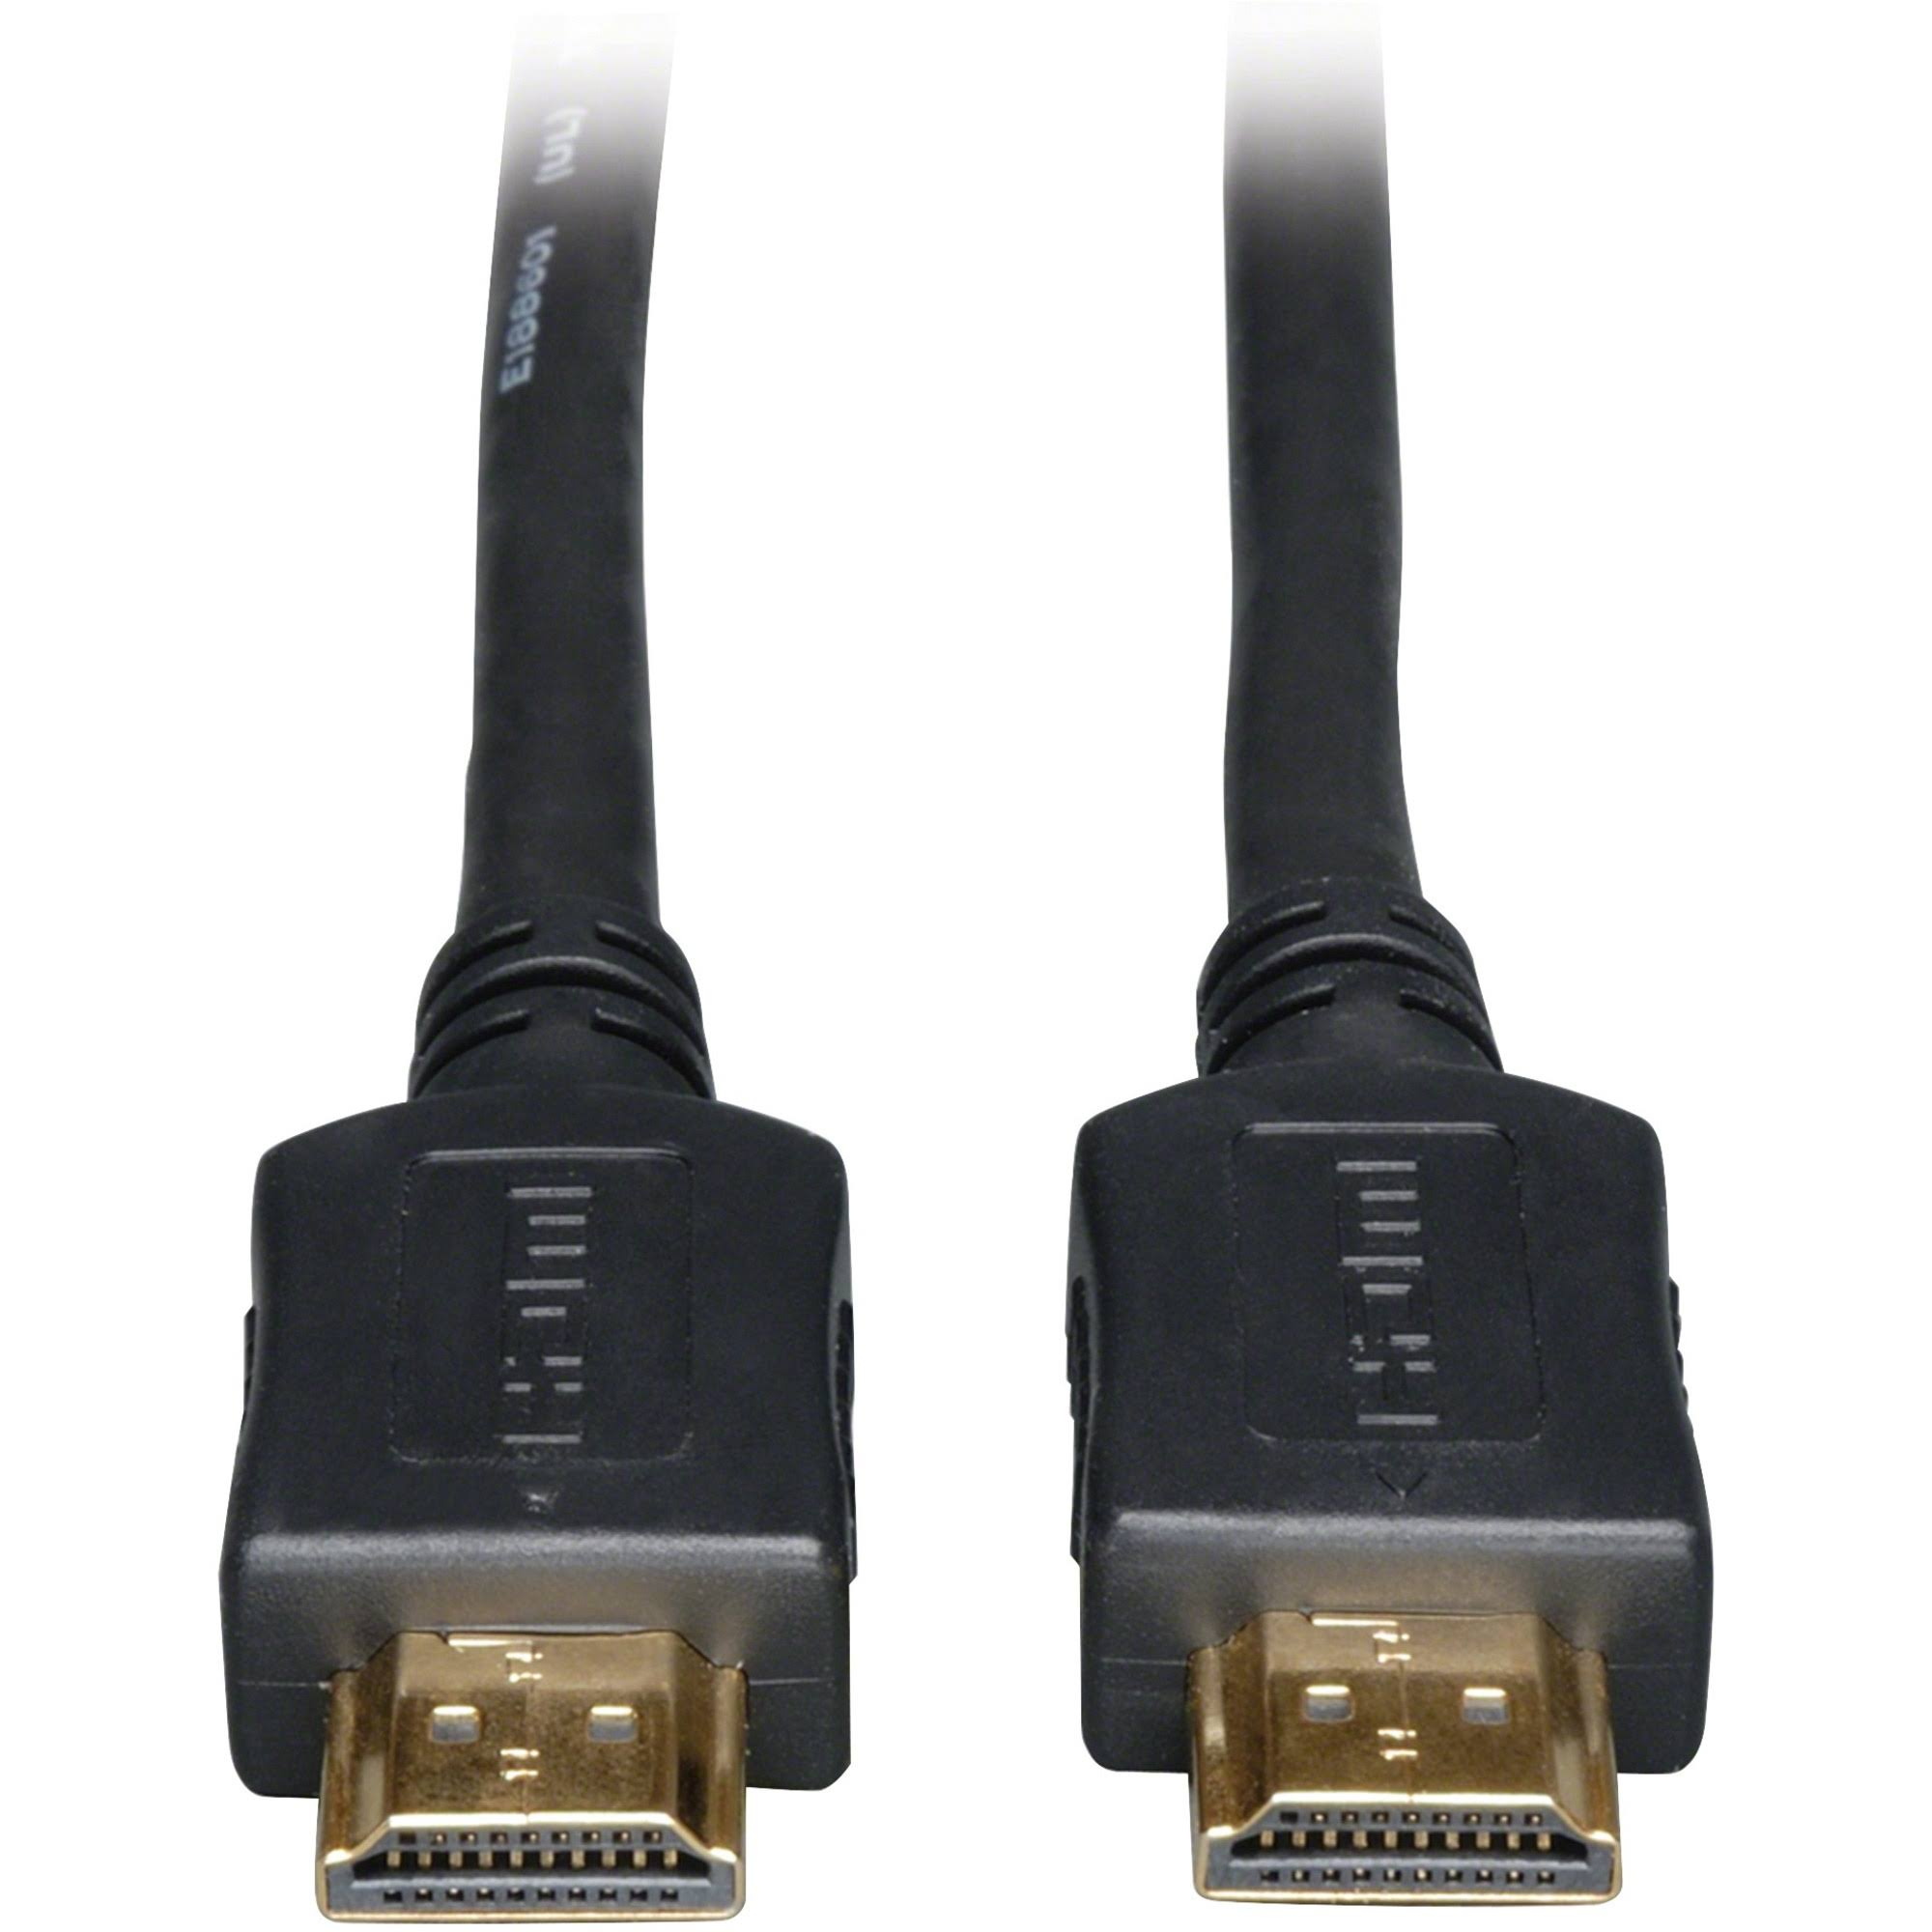 Tripp Lite P568-006 High Speed Audio Video Hdmi Cable - Black, 6'